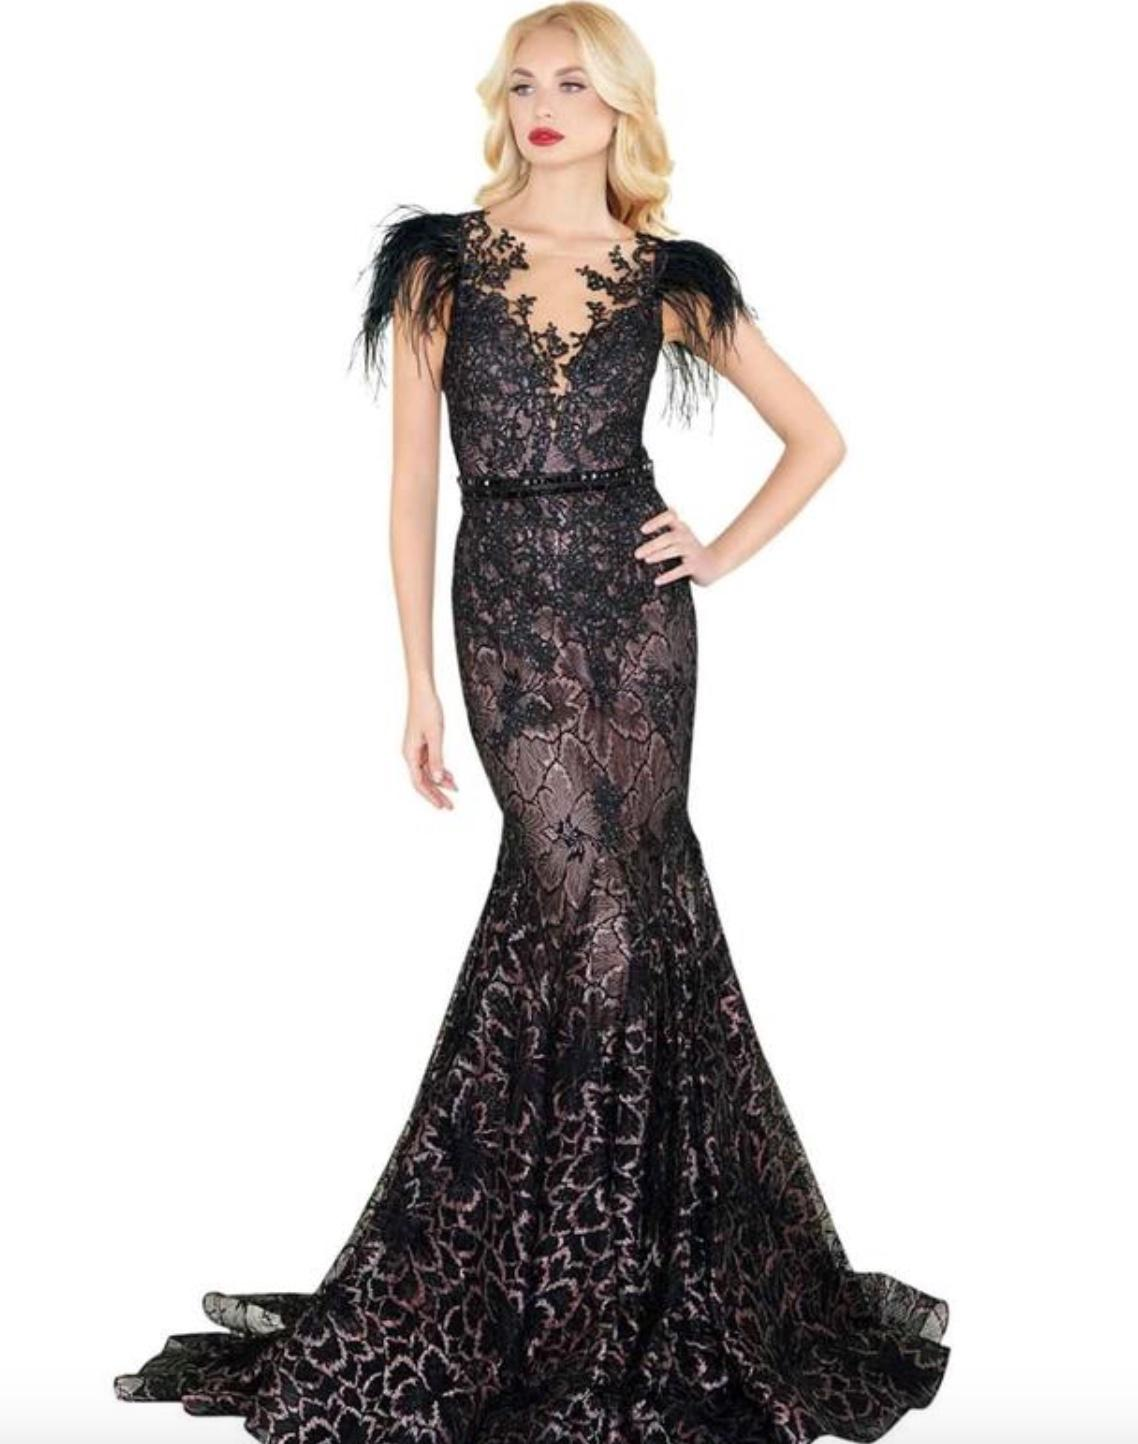 Know Your Evening Gown Silhouette